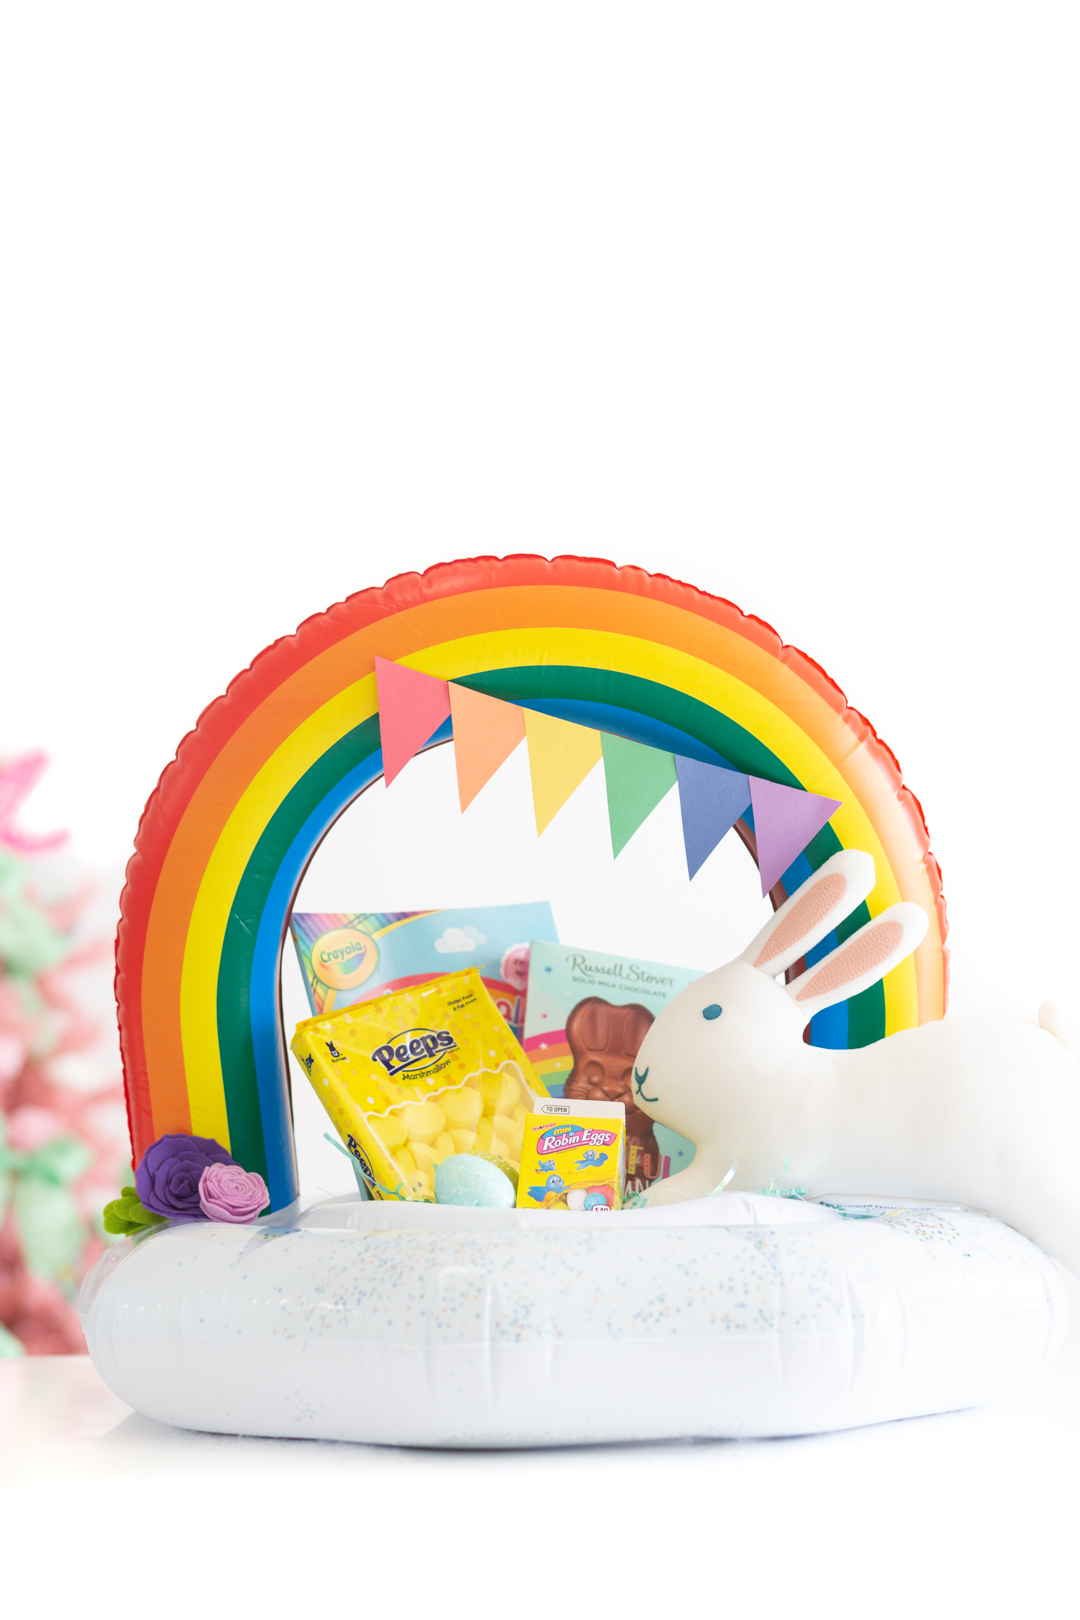 Rainbow pool float filled with Easter basket fillers like Peeps, Easter Candies, Coloring Books and Chocolate.